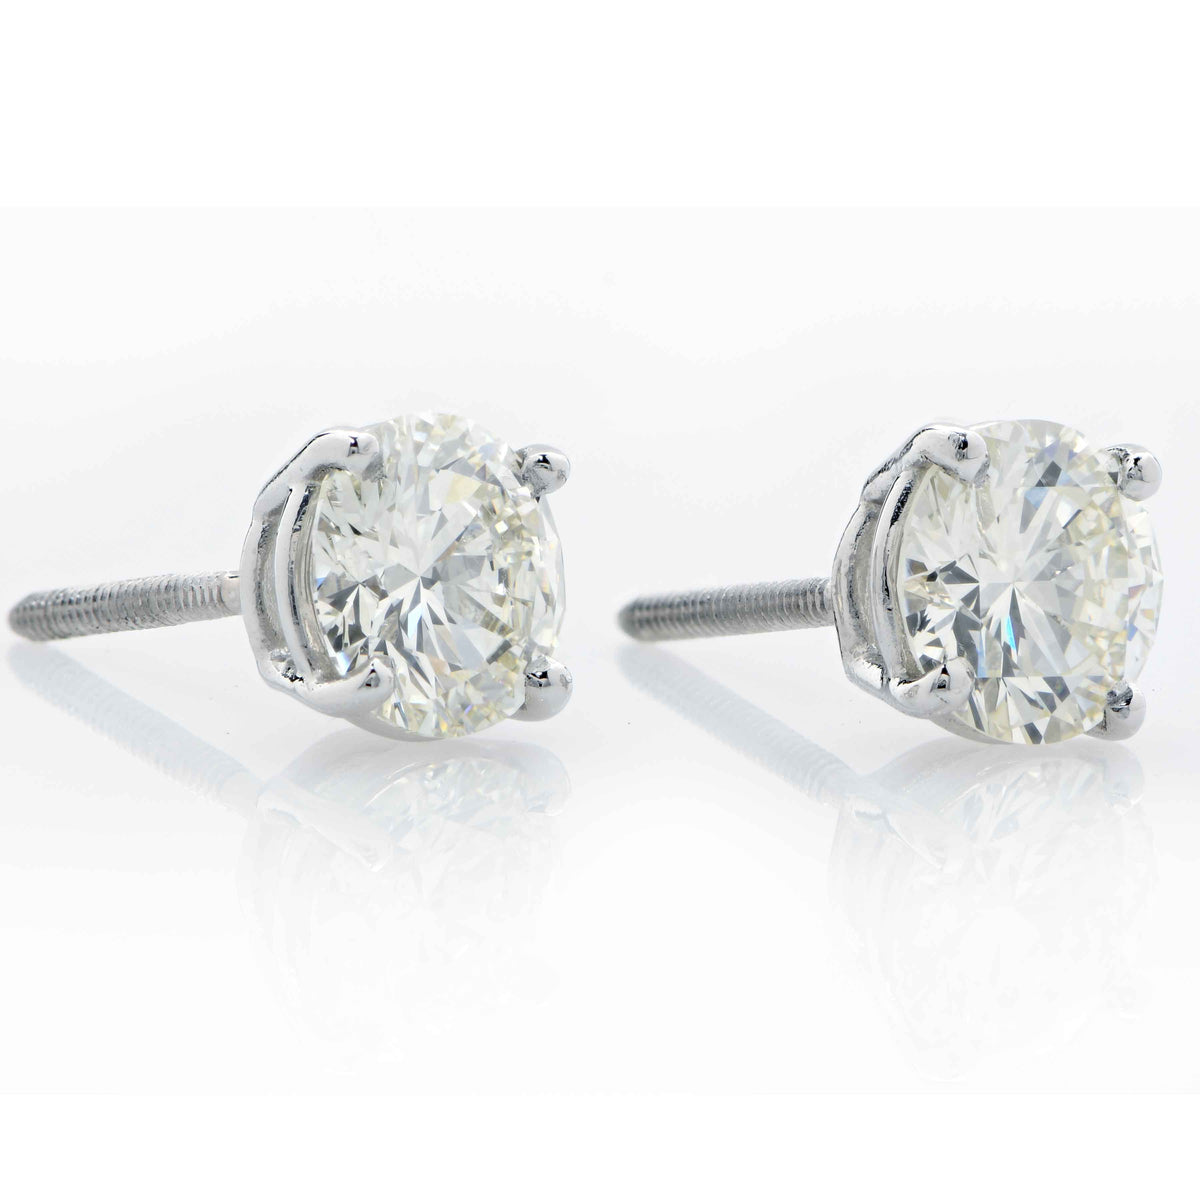 2.04 Carat Total Weight Diamond Stud Earrings